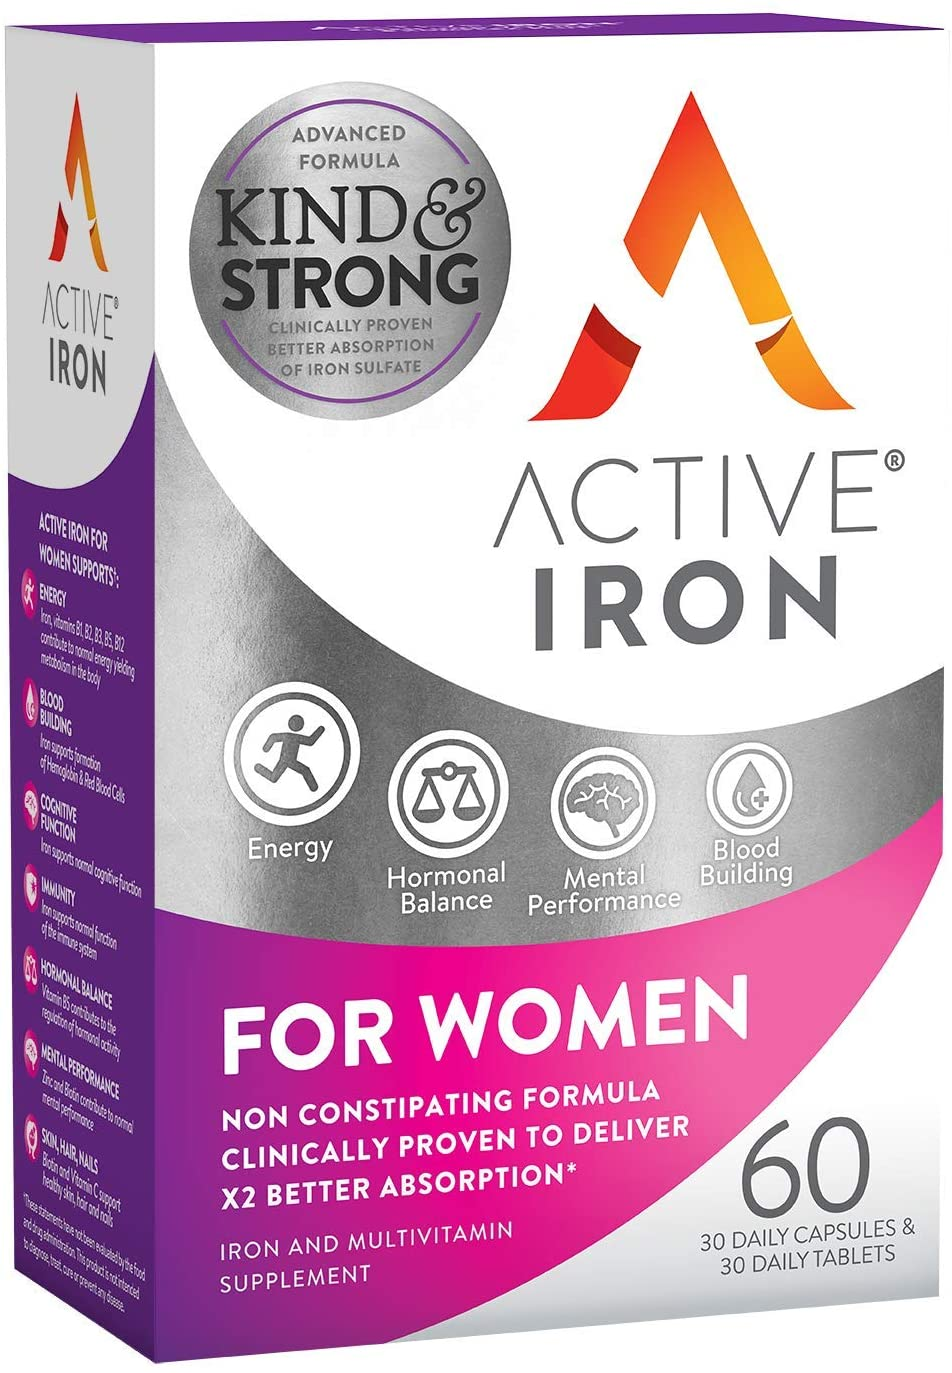 Active Iron for Women, Non-Constipating, 30 Active Iron High Potency Capsules with 30 Multivitamin Tablets, Helps Strengthen Your Immune System